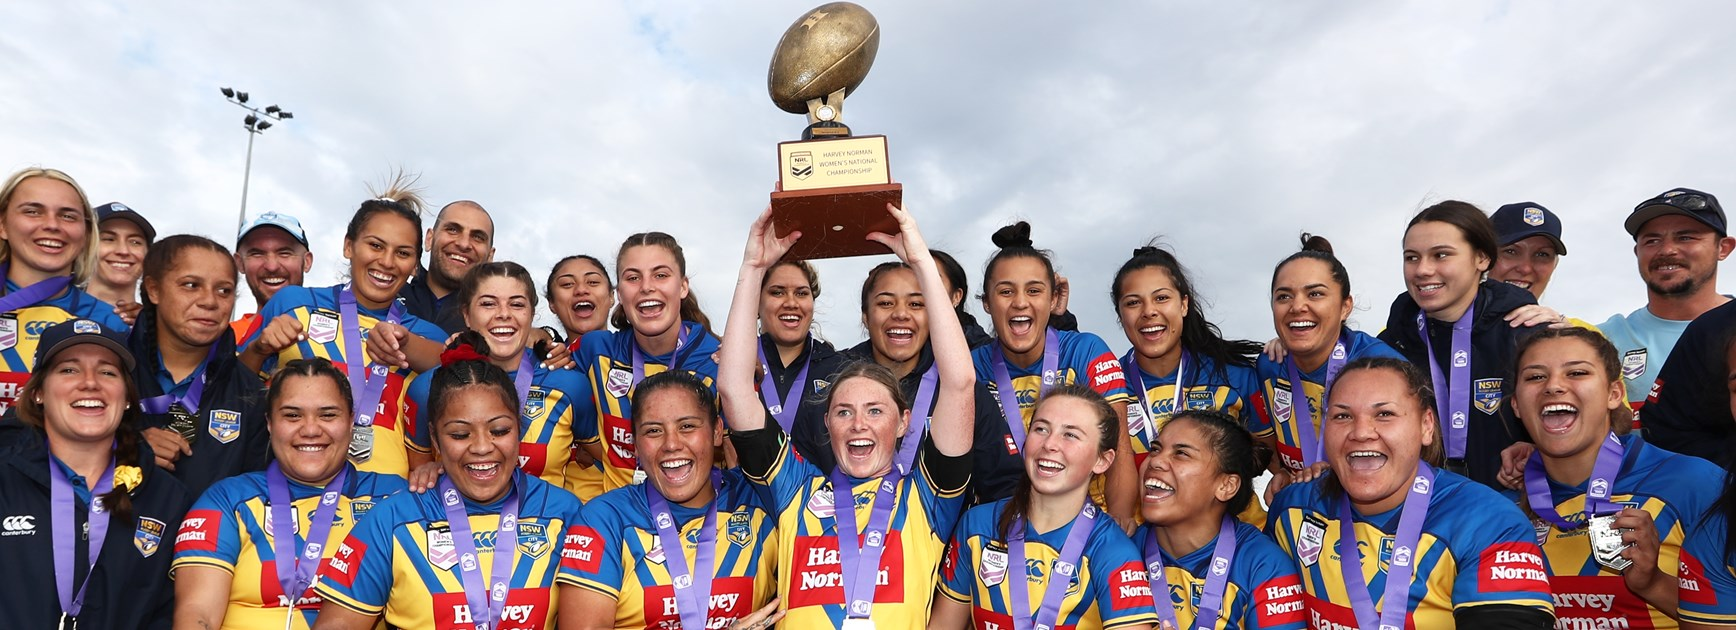 NSW City cruise to Grand Final glory